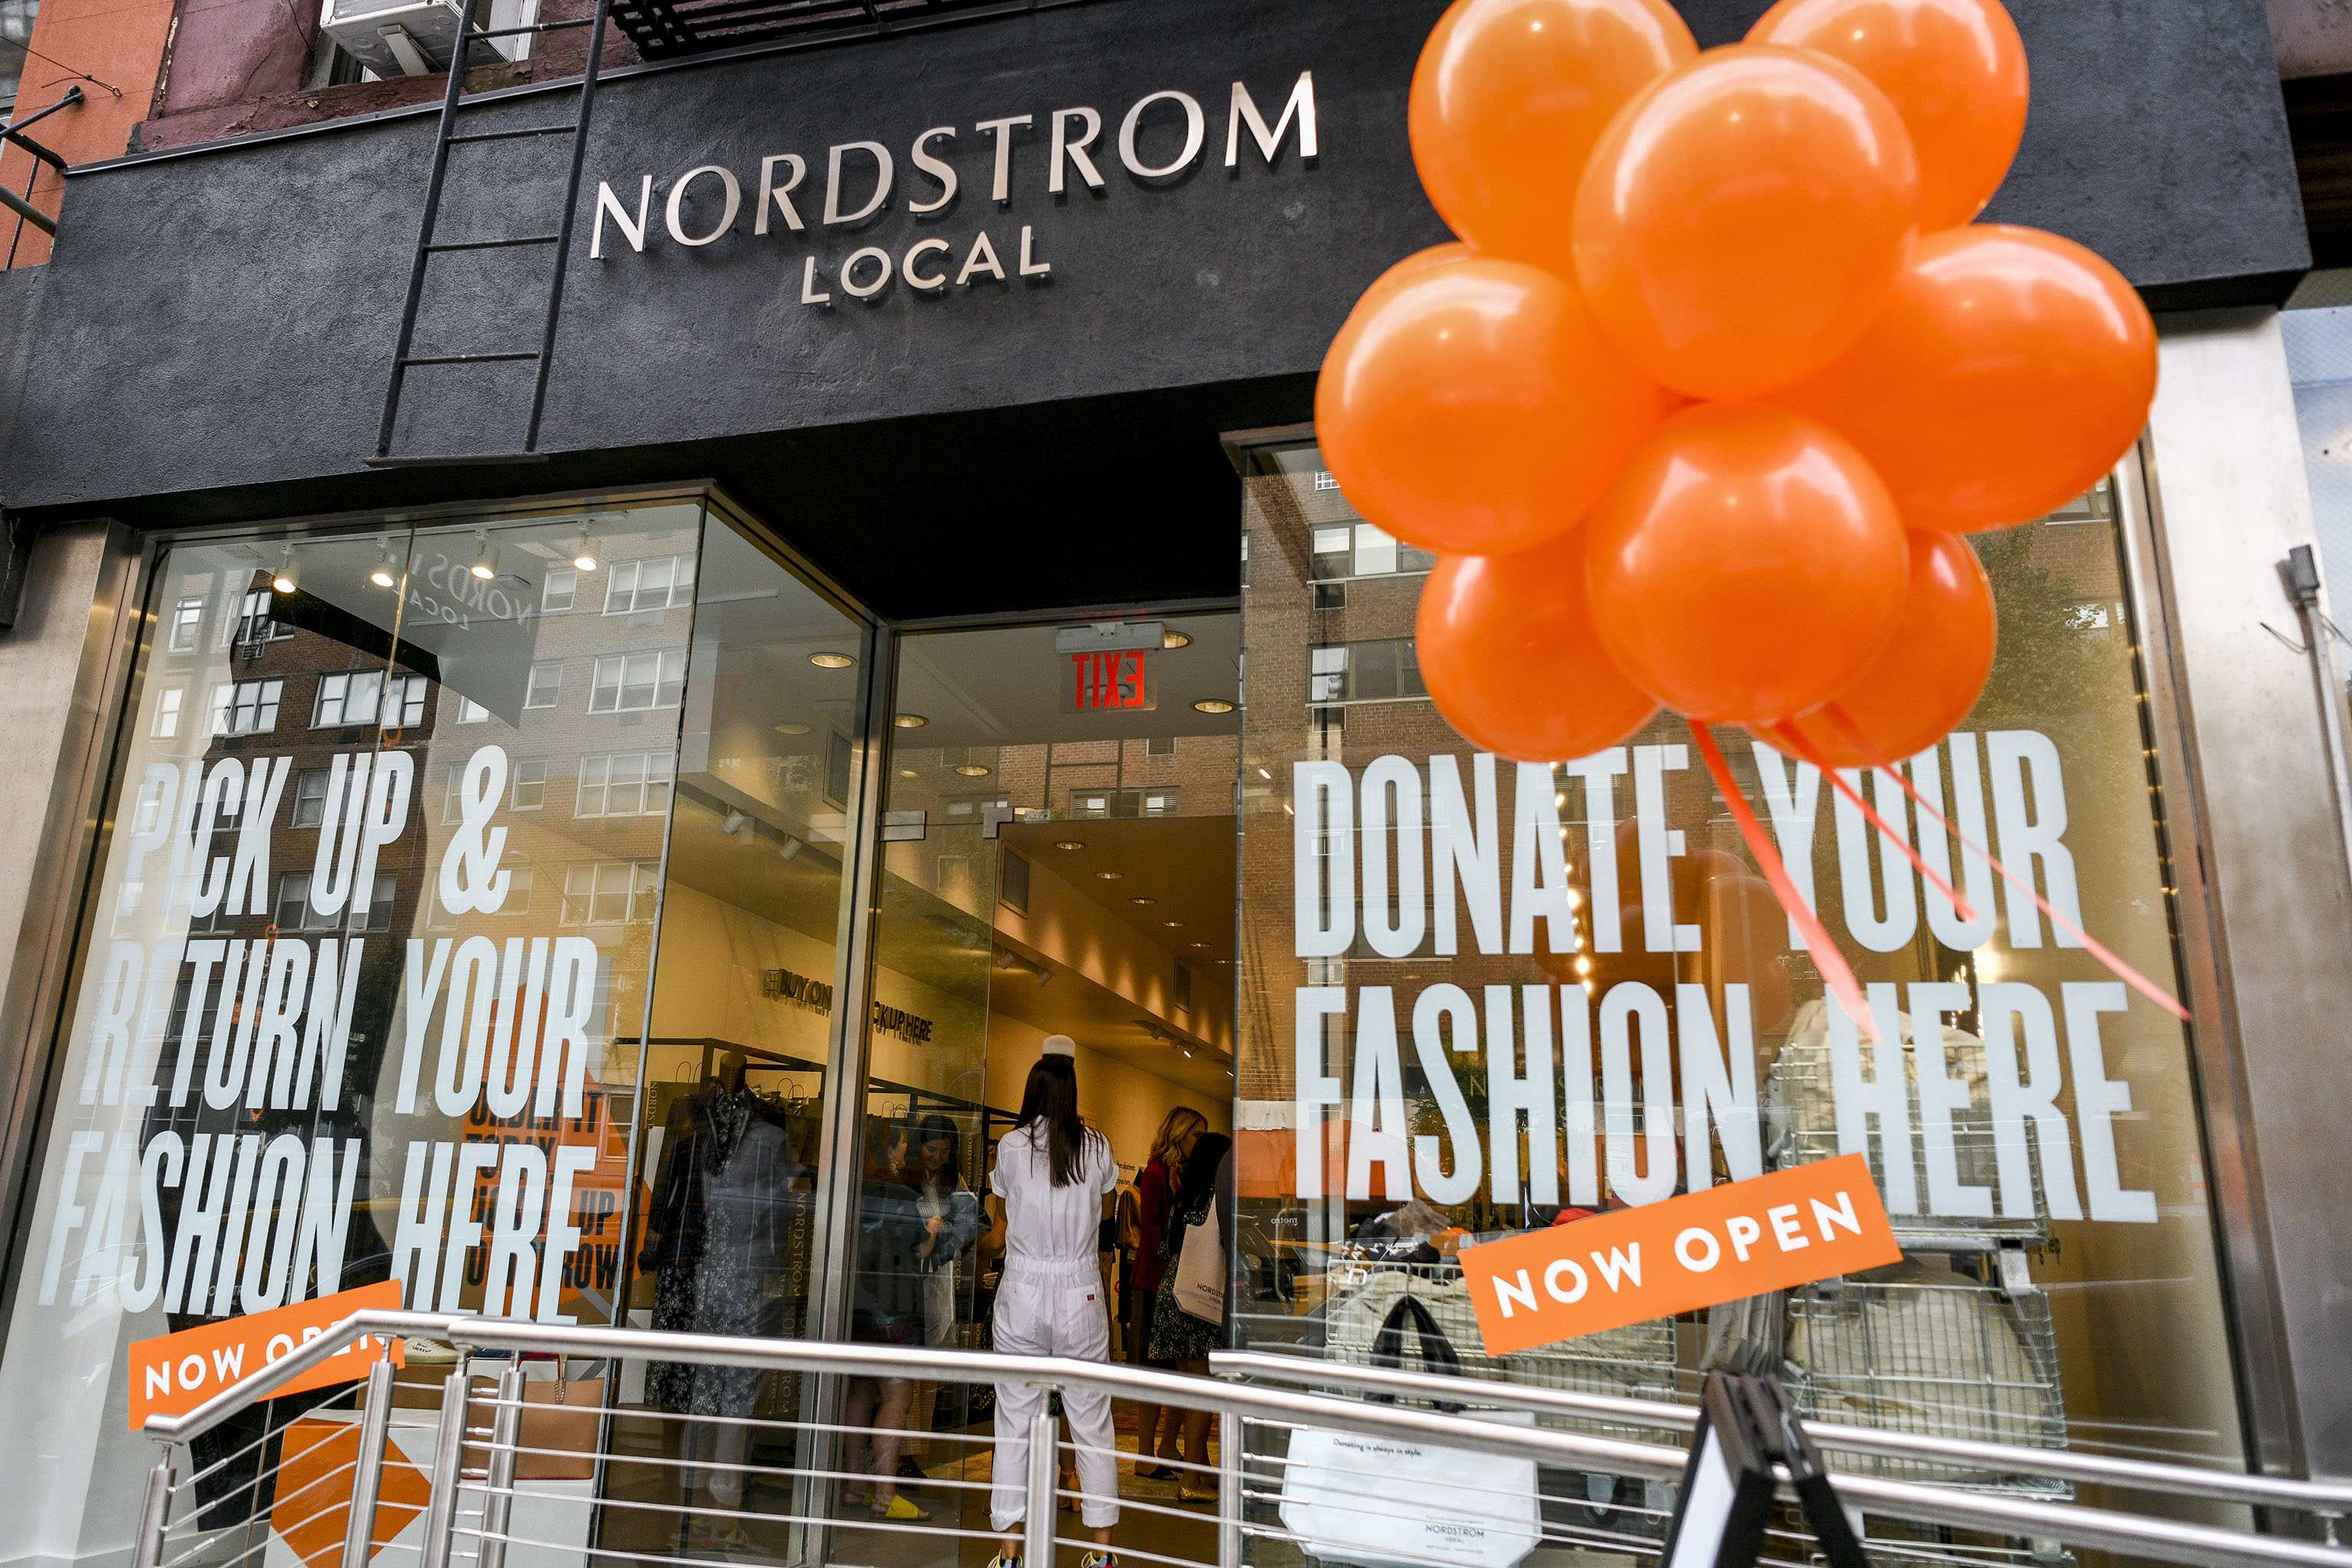 Nordstrom Local on Third Avenue in Manhattan